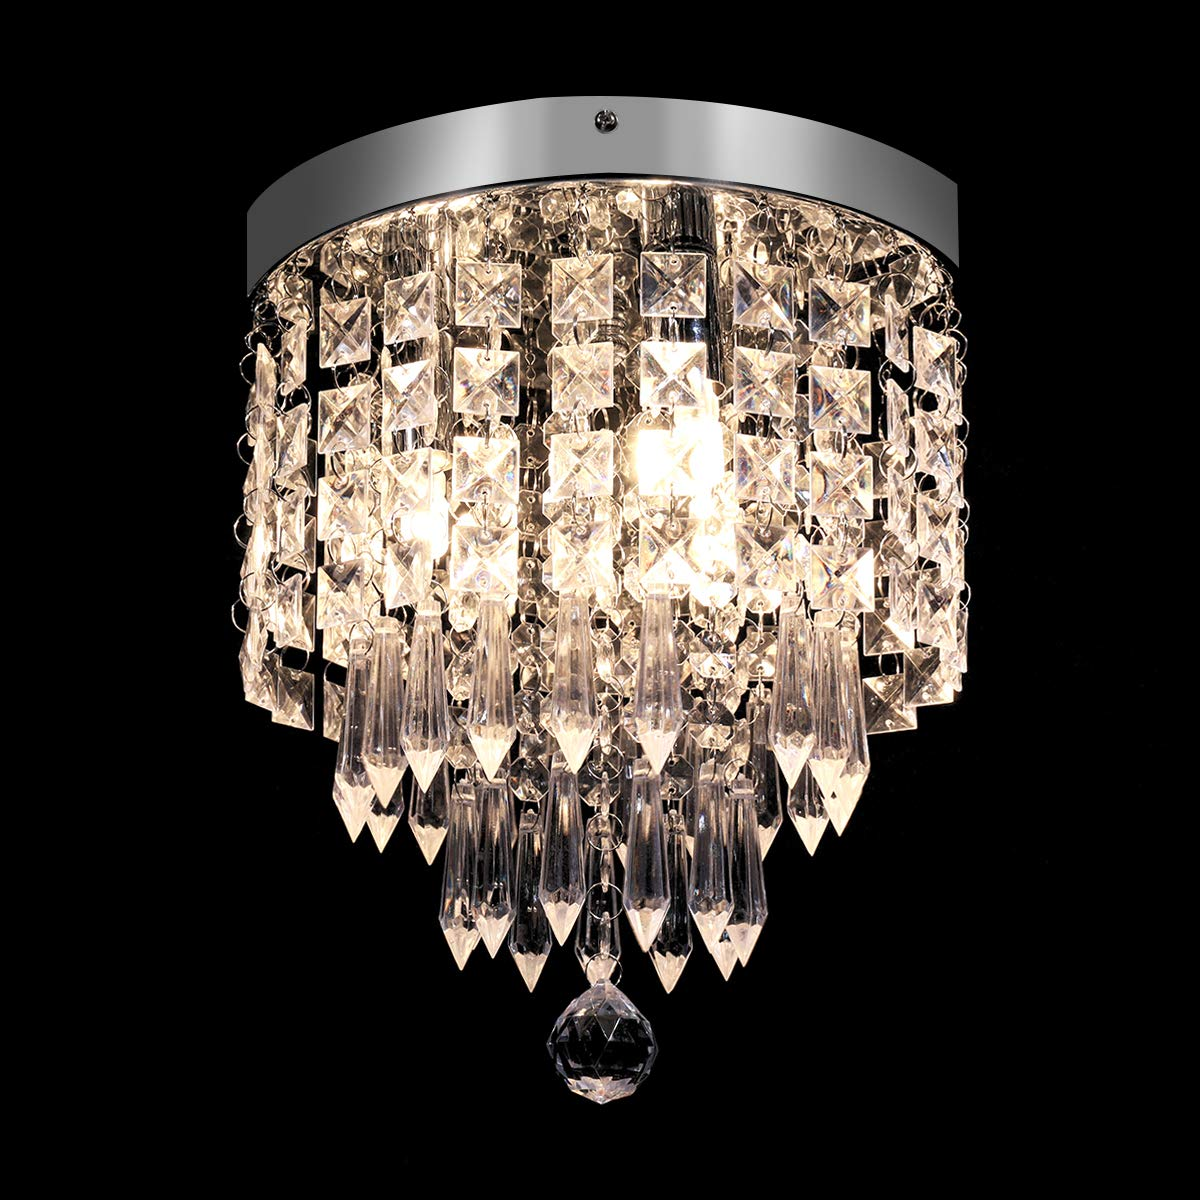 KingSo Modern Chandelier Crystal Ceiling Light 3 Lights Elegant Flush Mount Light Fixtures H10.63 X W8.66 for Bedroom,Living Room, Hallway,Kitchen, Bathroom, Bar, Dining Room, G9 Base